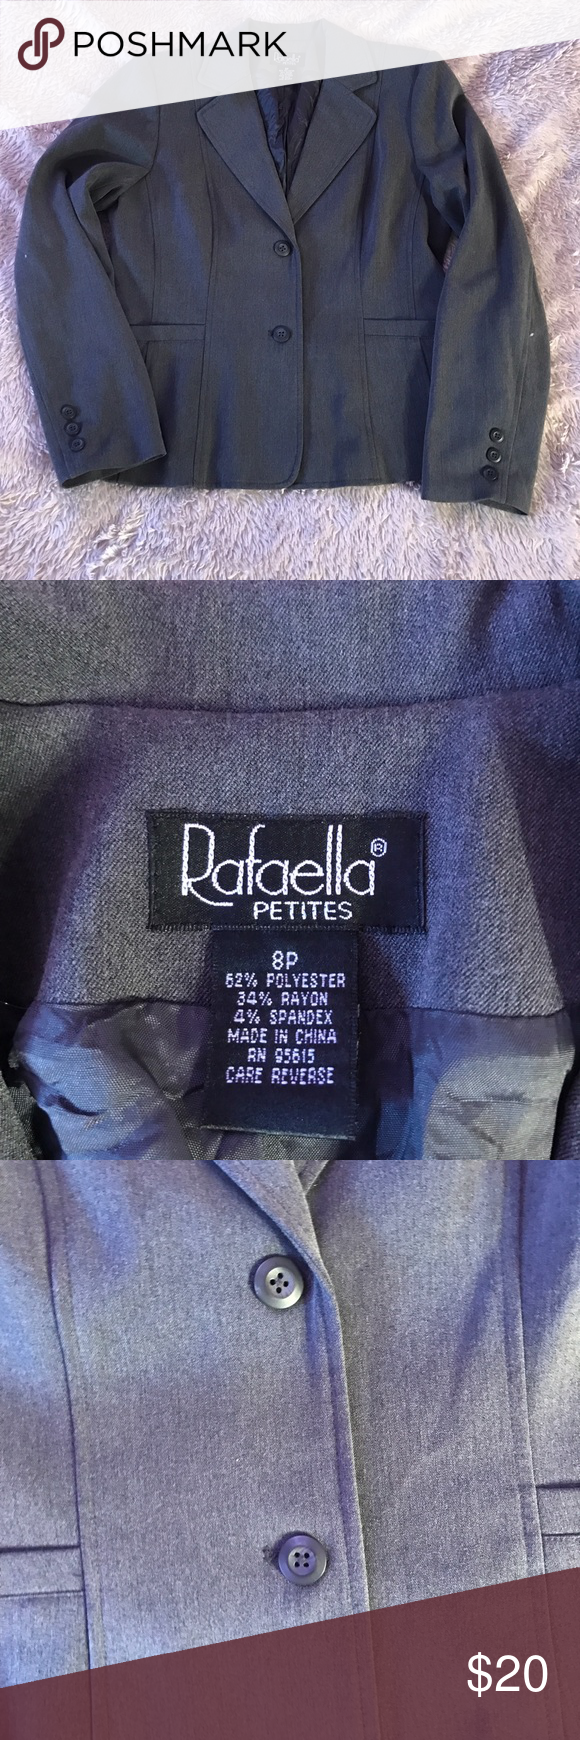 Petite blazer Rafaella charcoal grey blazer in excellent used condition. Size 8 petite. Two front faux pockets Rafaella Jackets & Coats Blazers